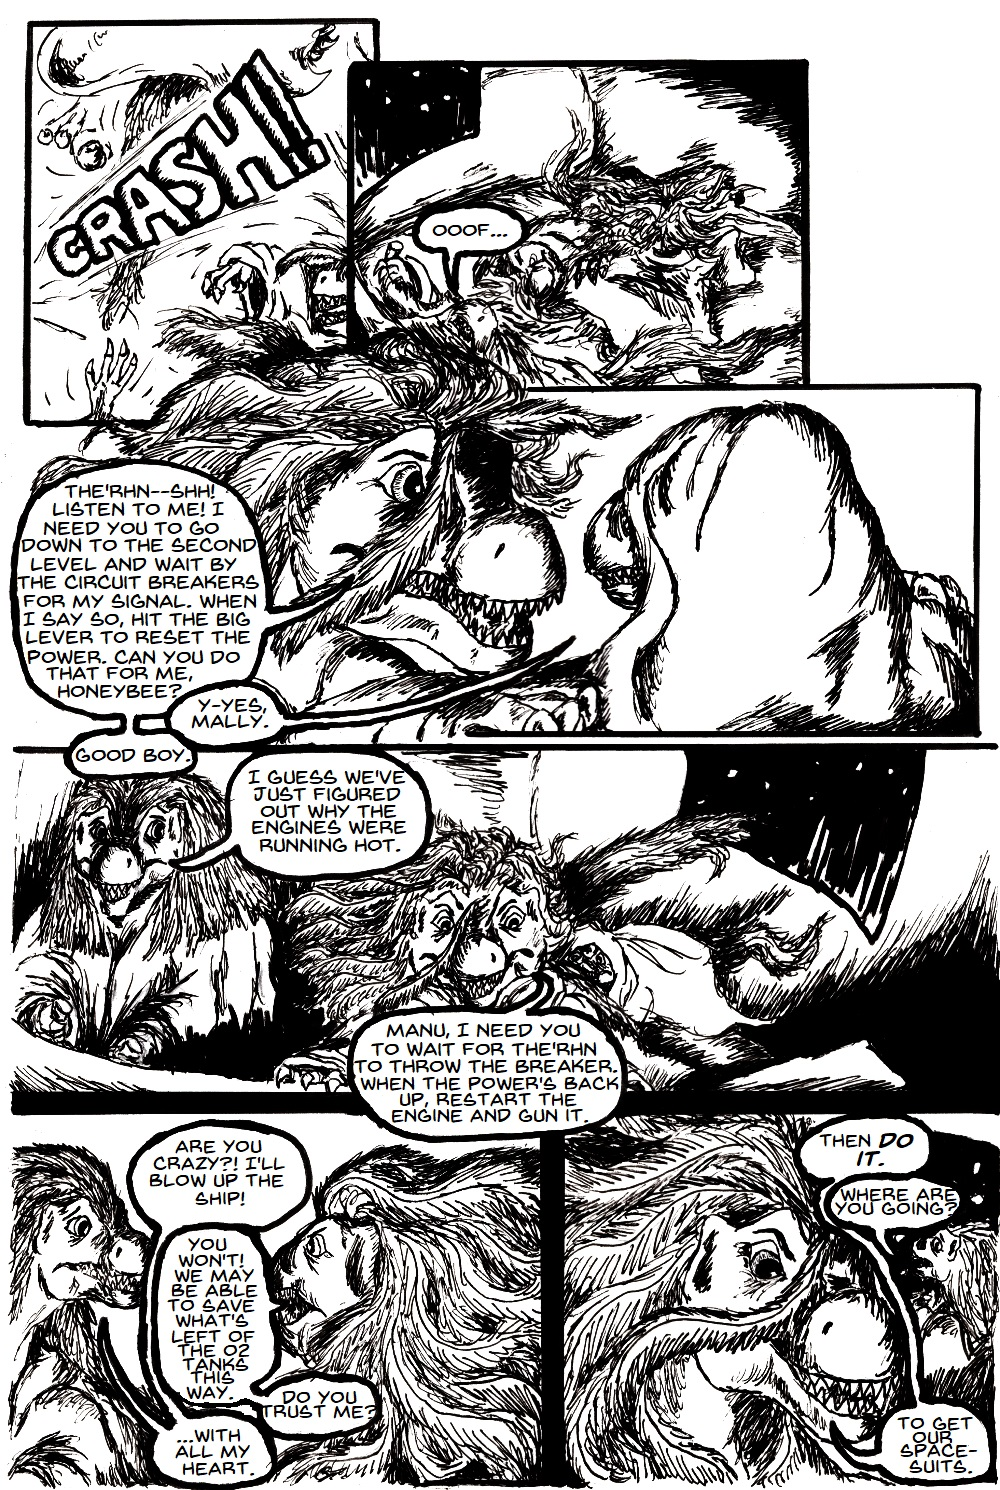 Into the Void P10